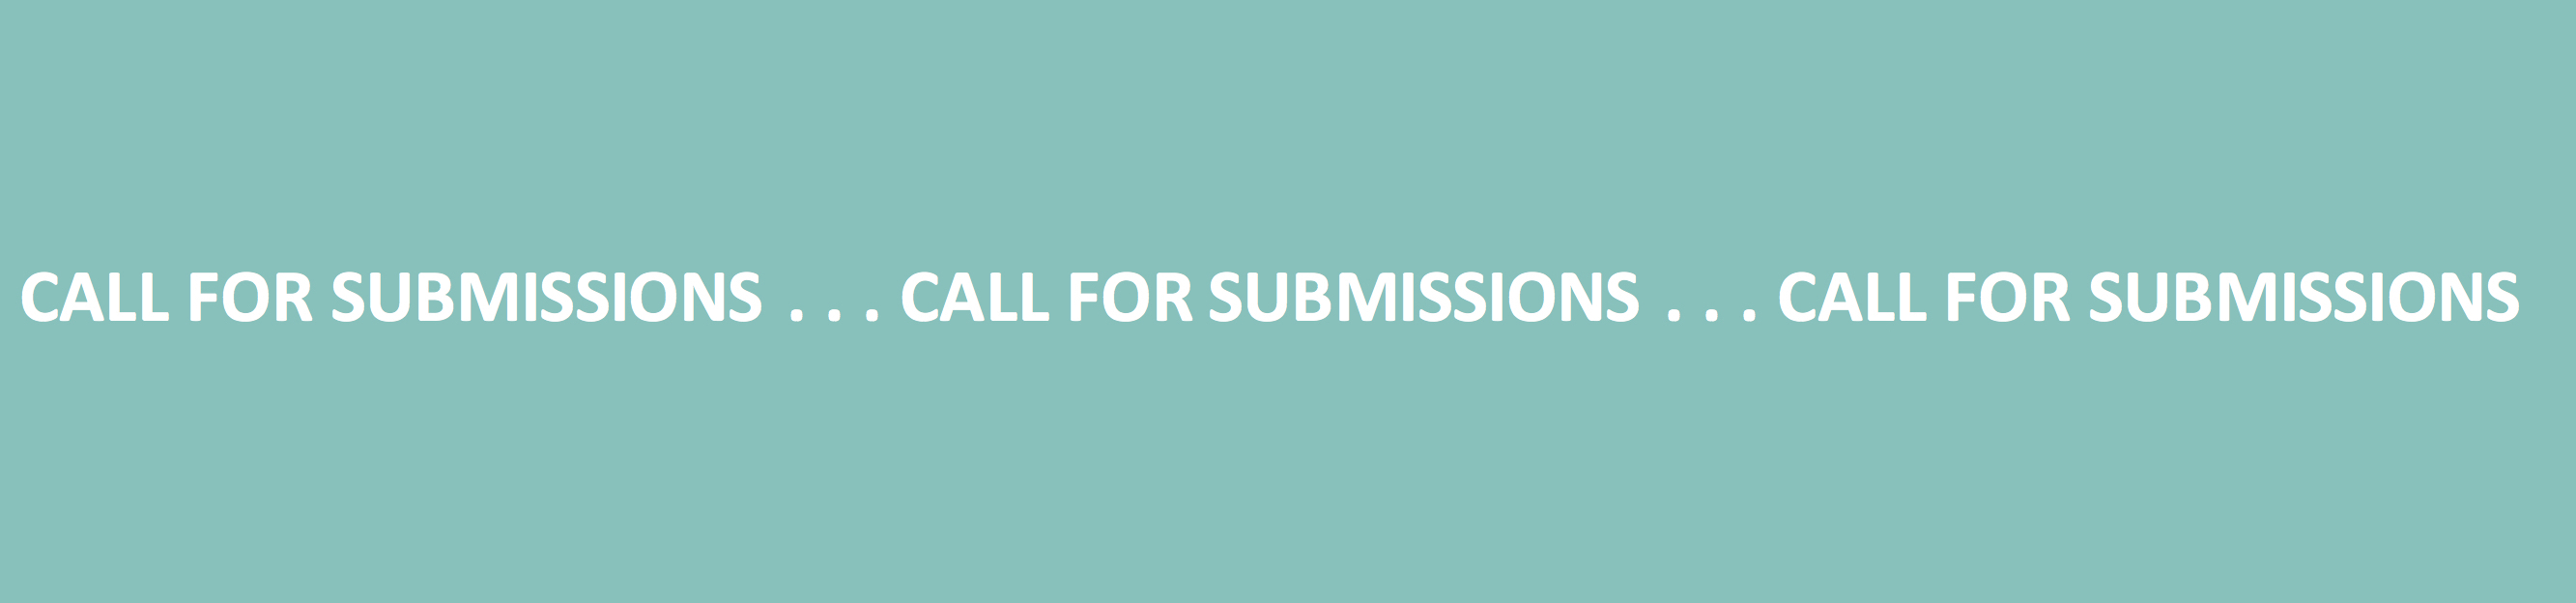 banner call for submissions